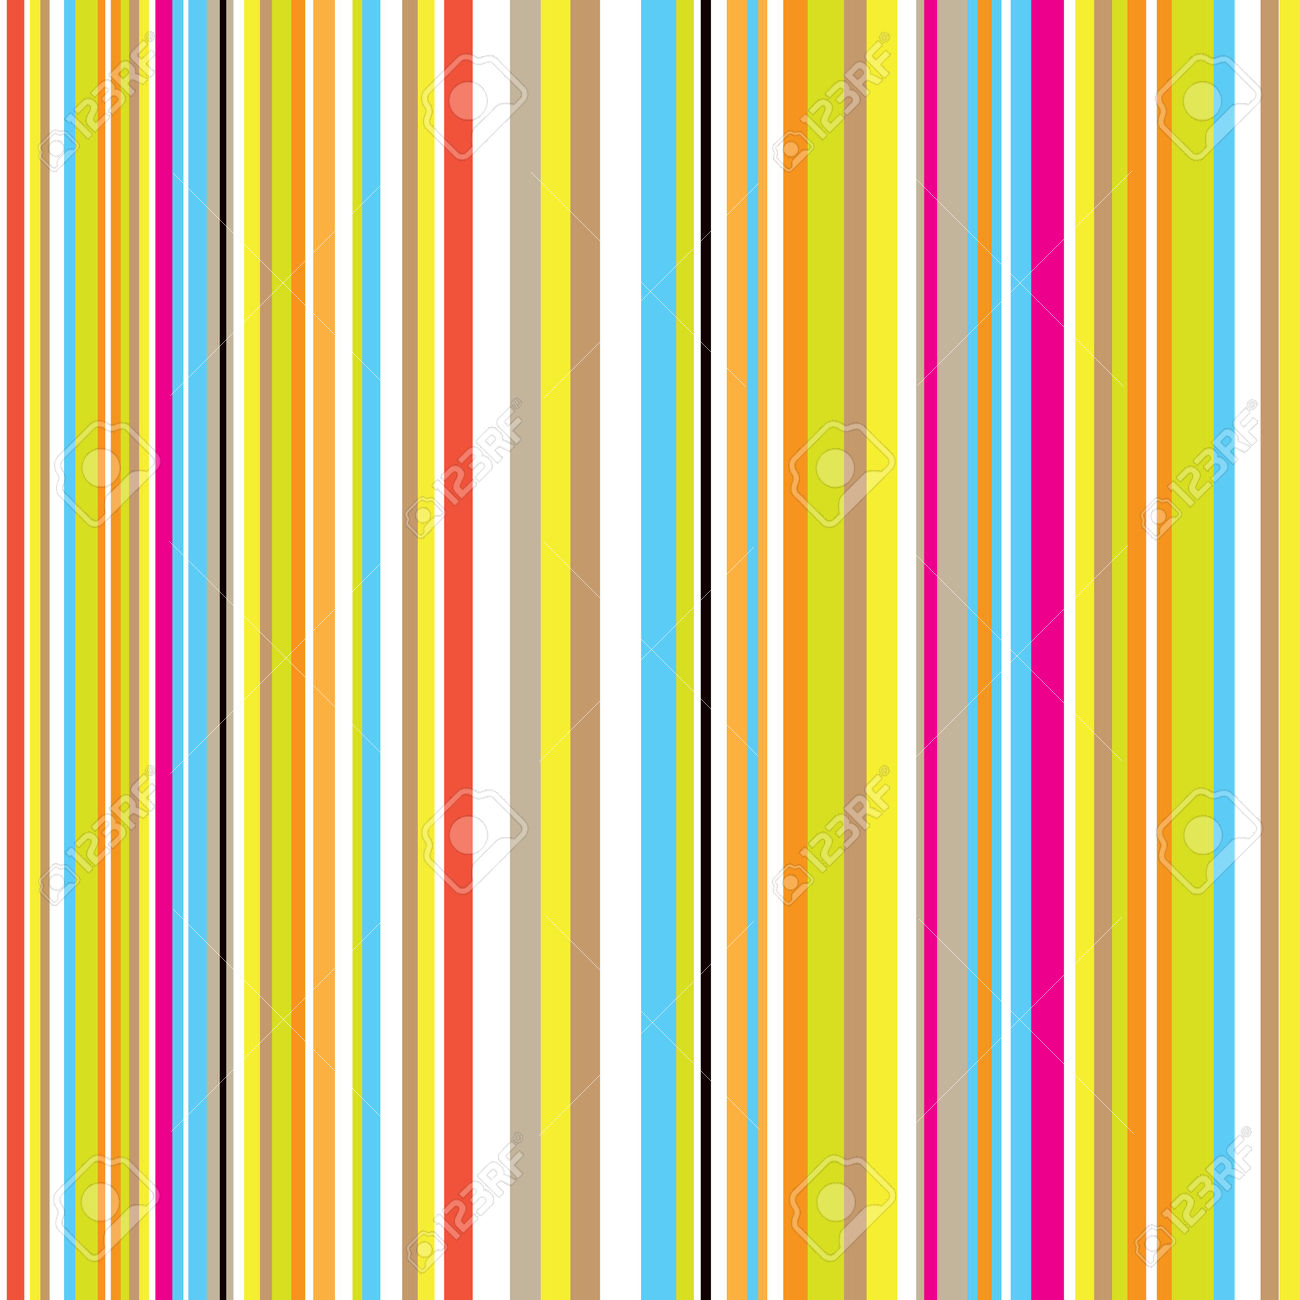 Stripe clipart pastel yellow Stripe coloured stripe Pastel clipart